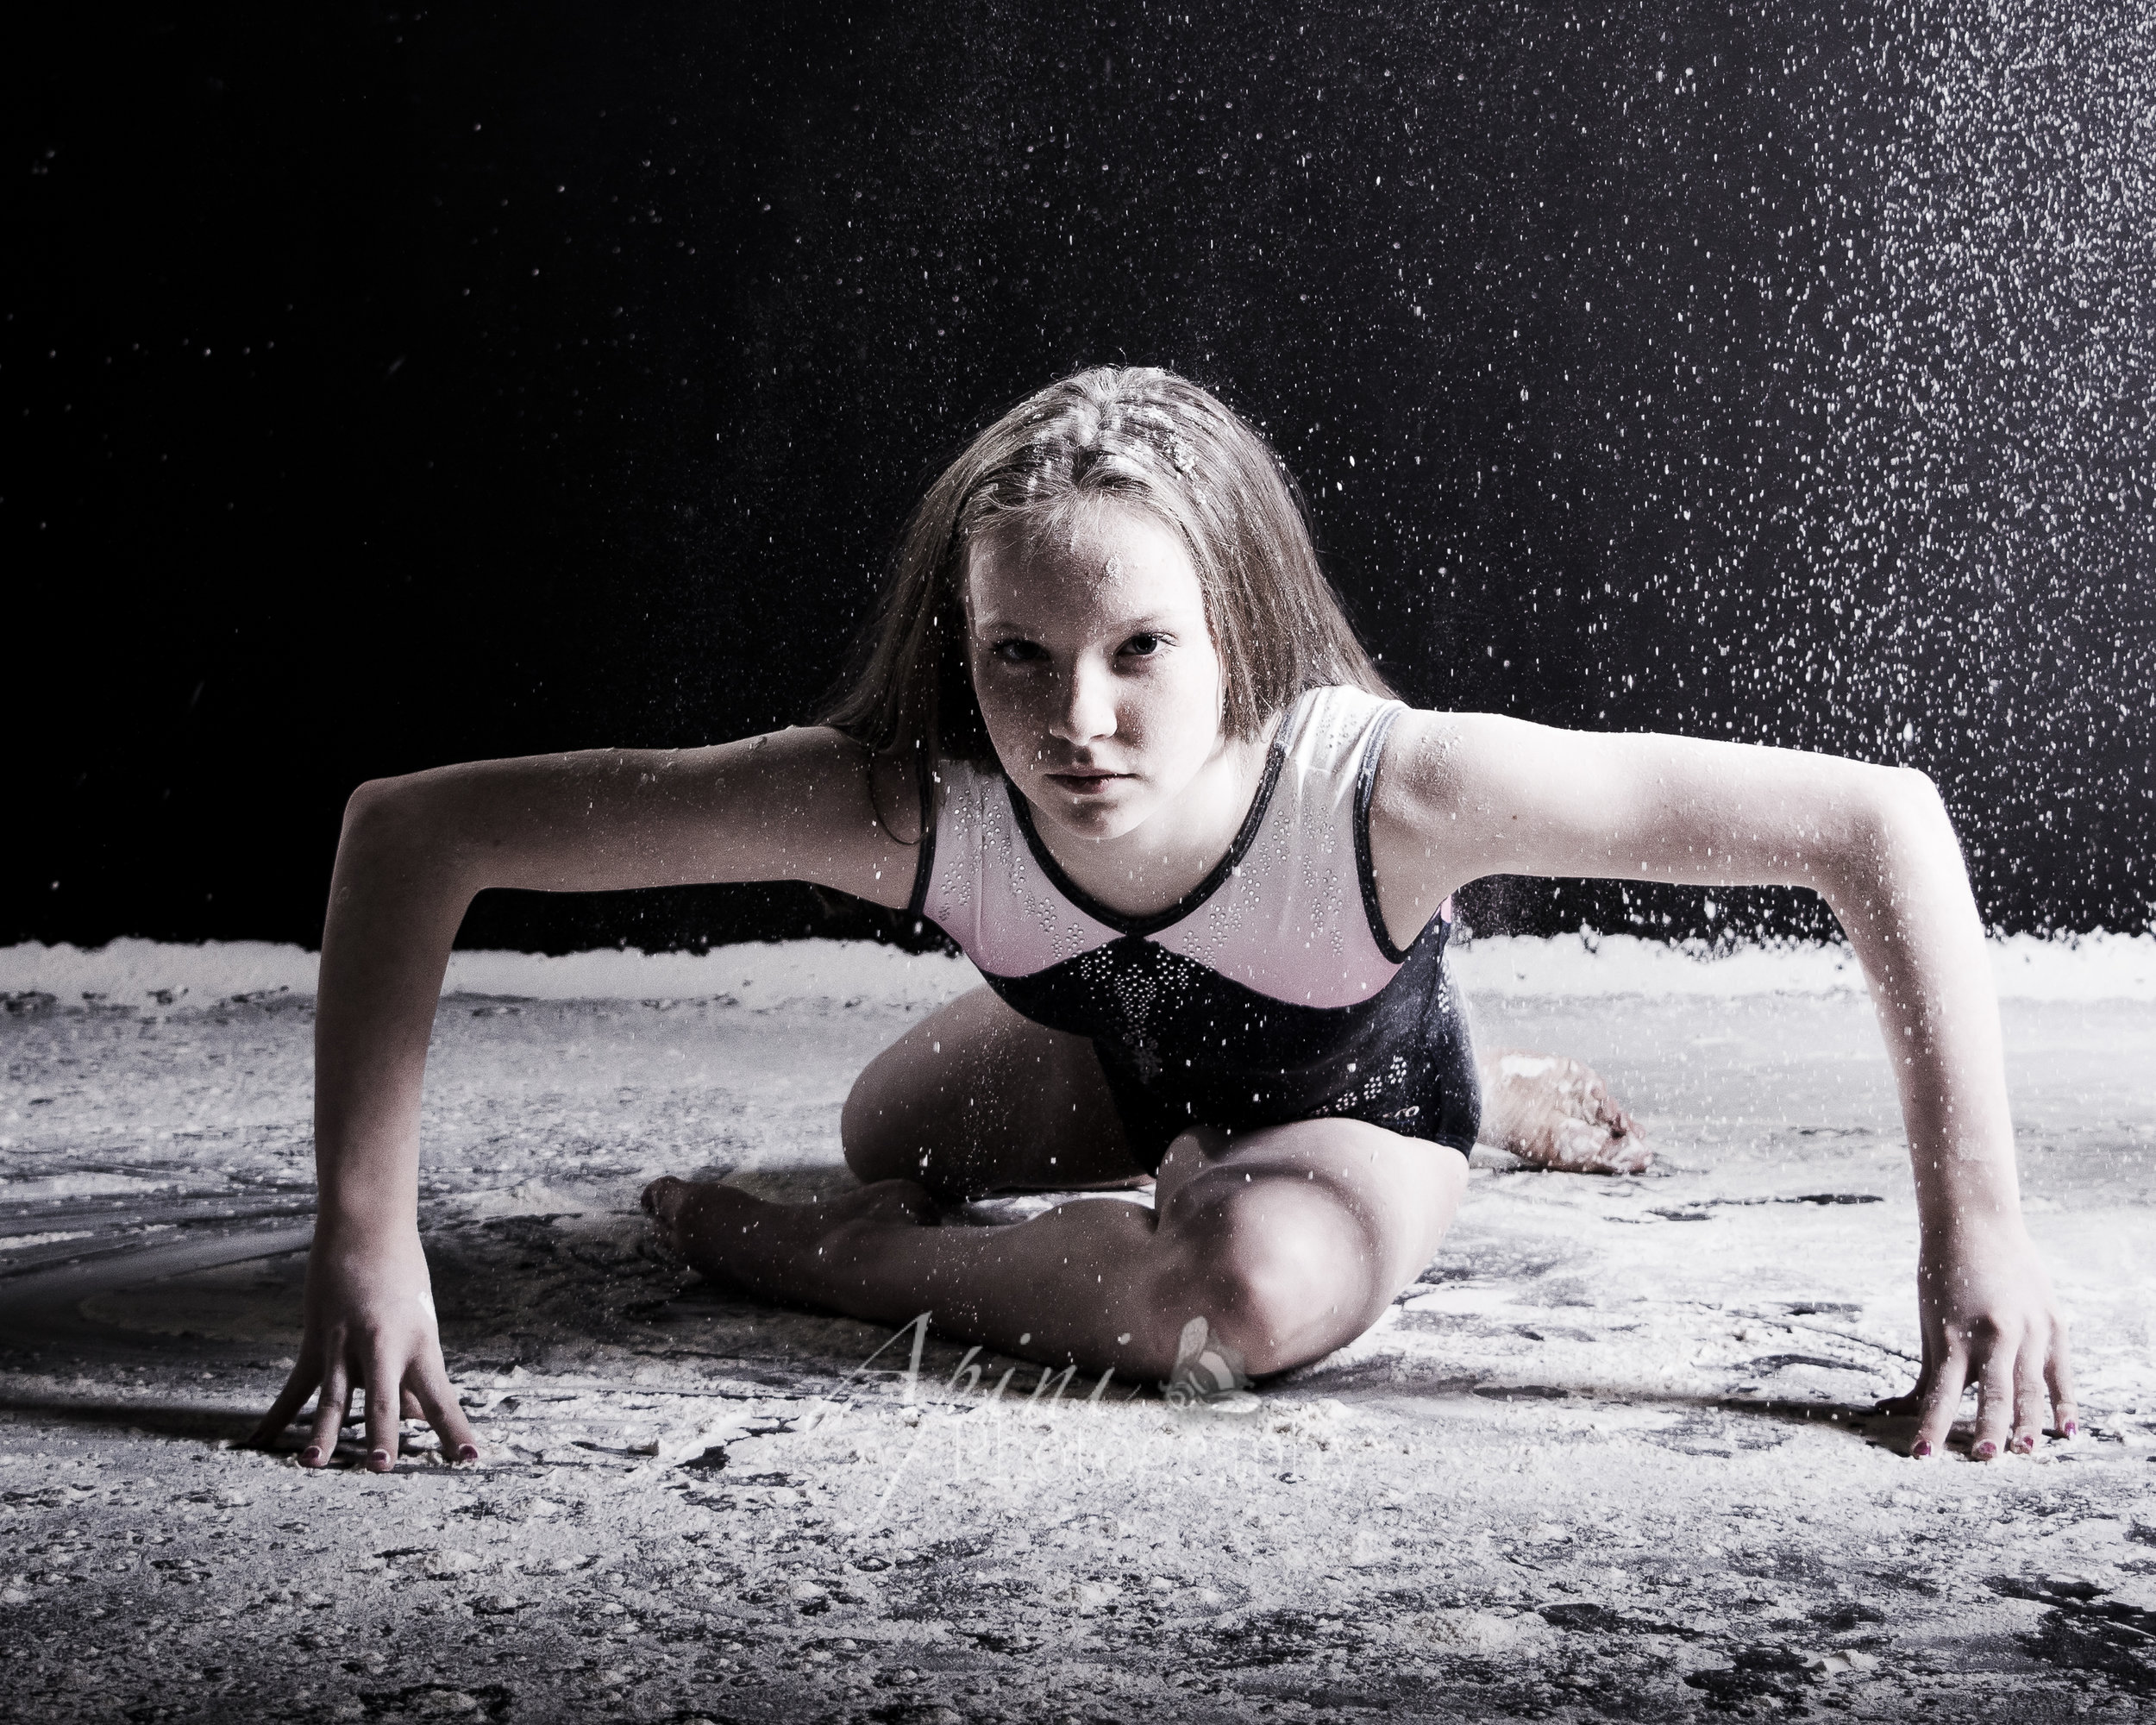 Gymnast Photography